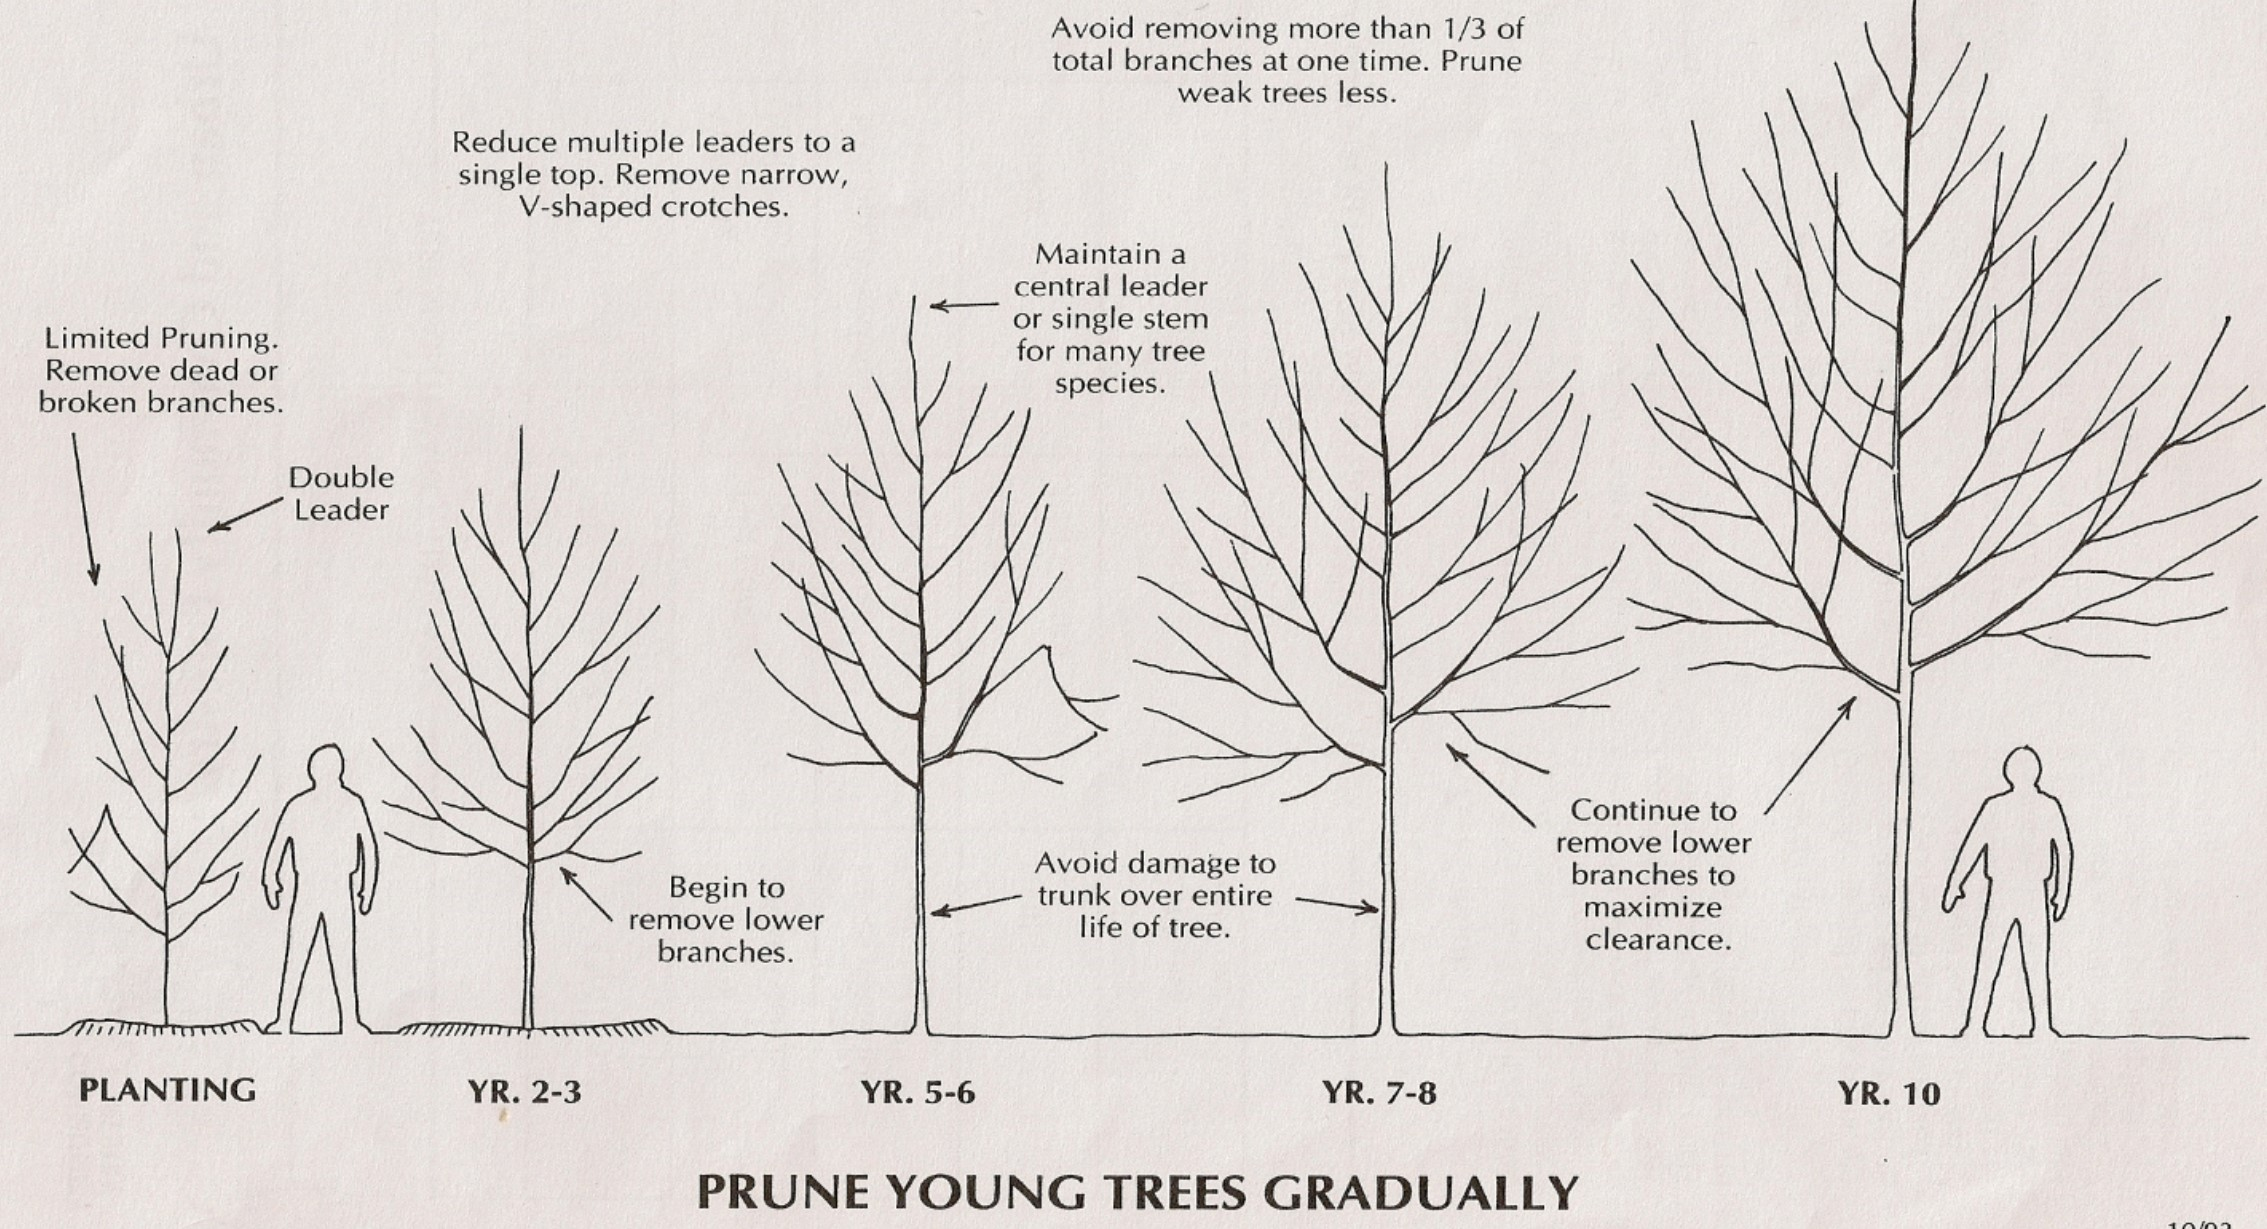 Complete And Proper Tree Pruning Practices To Keep In Mind